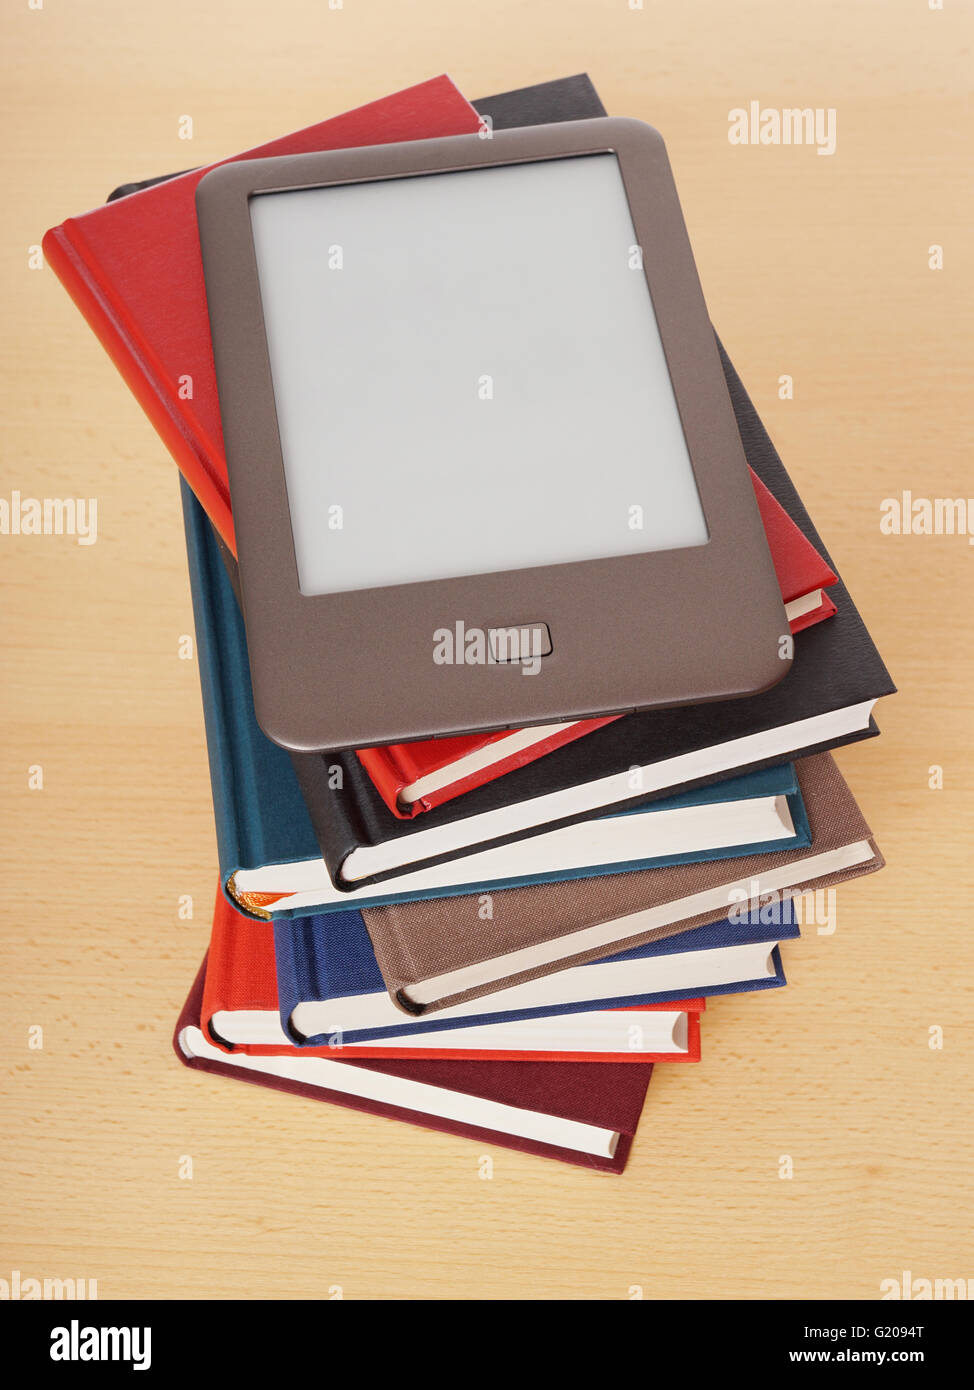 e-book reader on pile of books - Stock Image